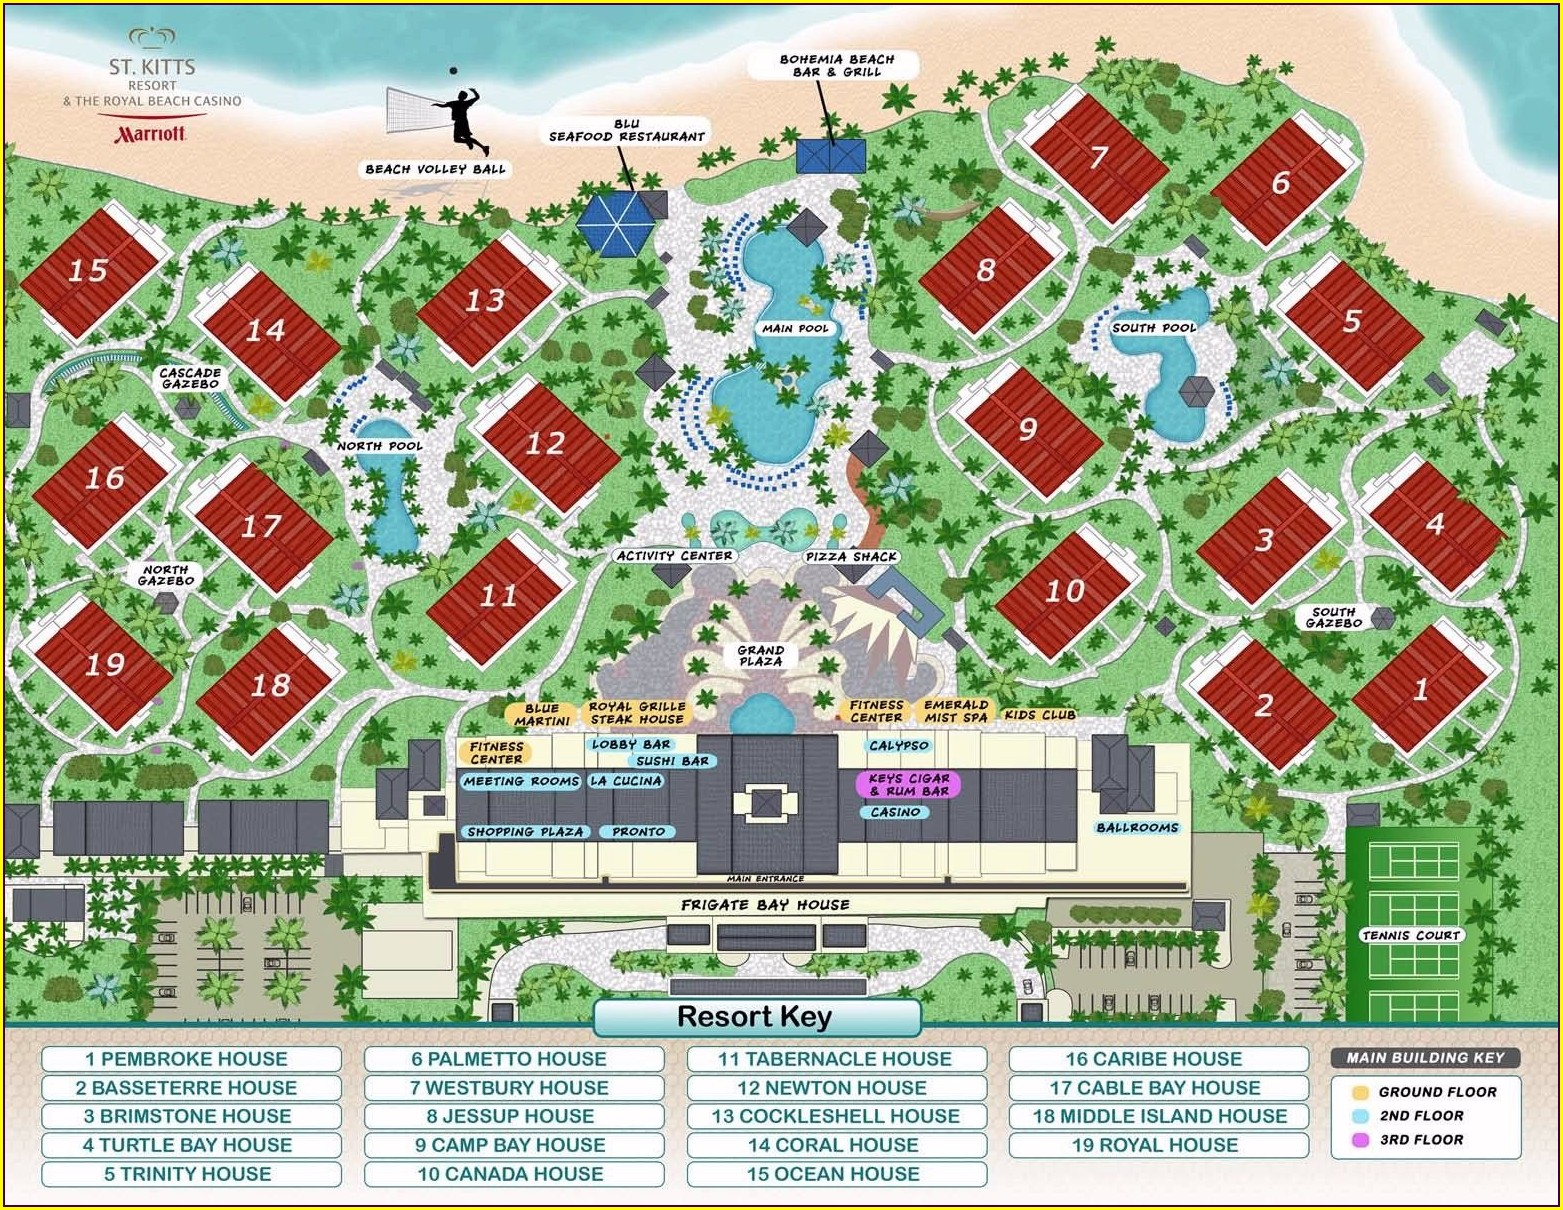 Marriott St Kitts Resort Map